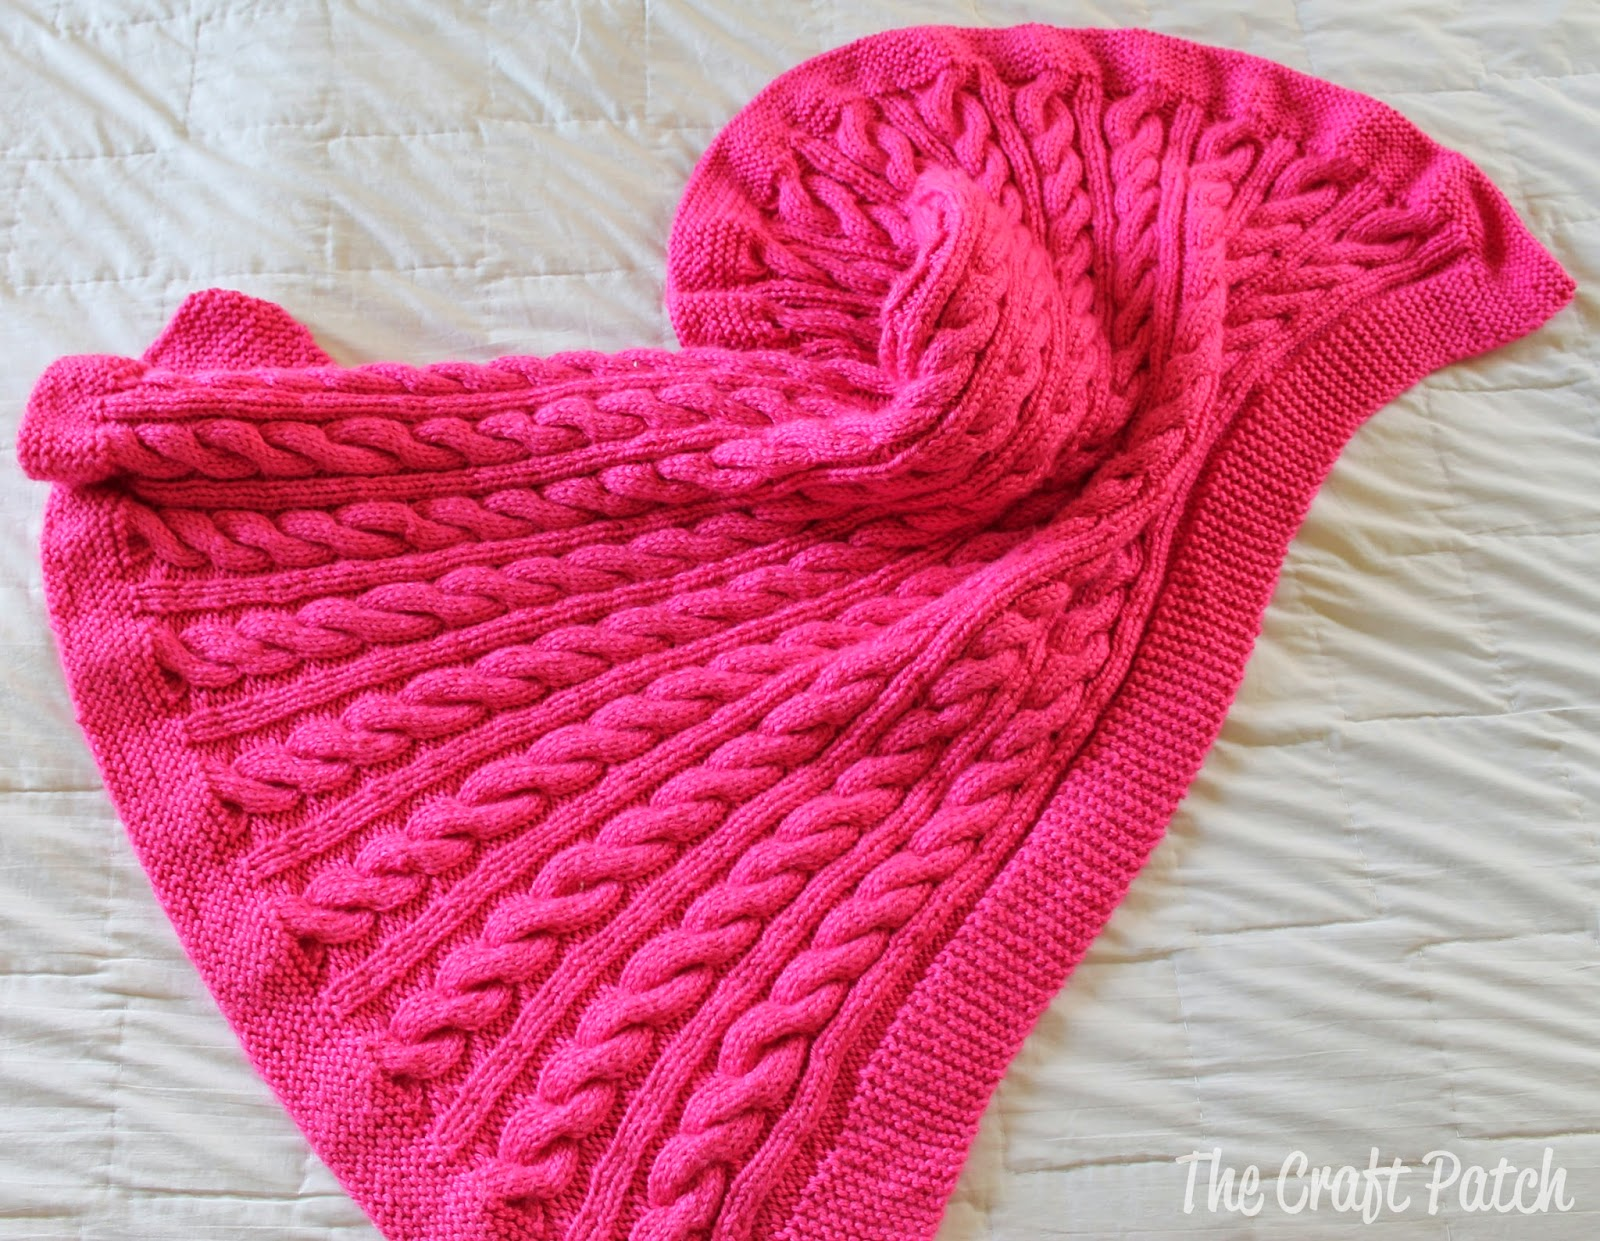 Knitting Blankets : The craft patch cable knit baby blanket